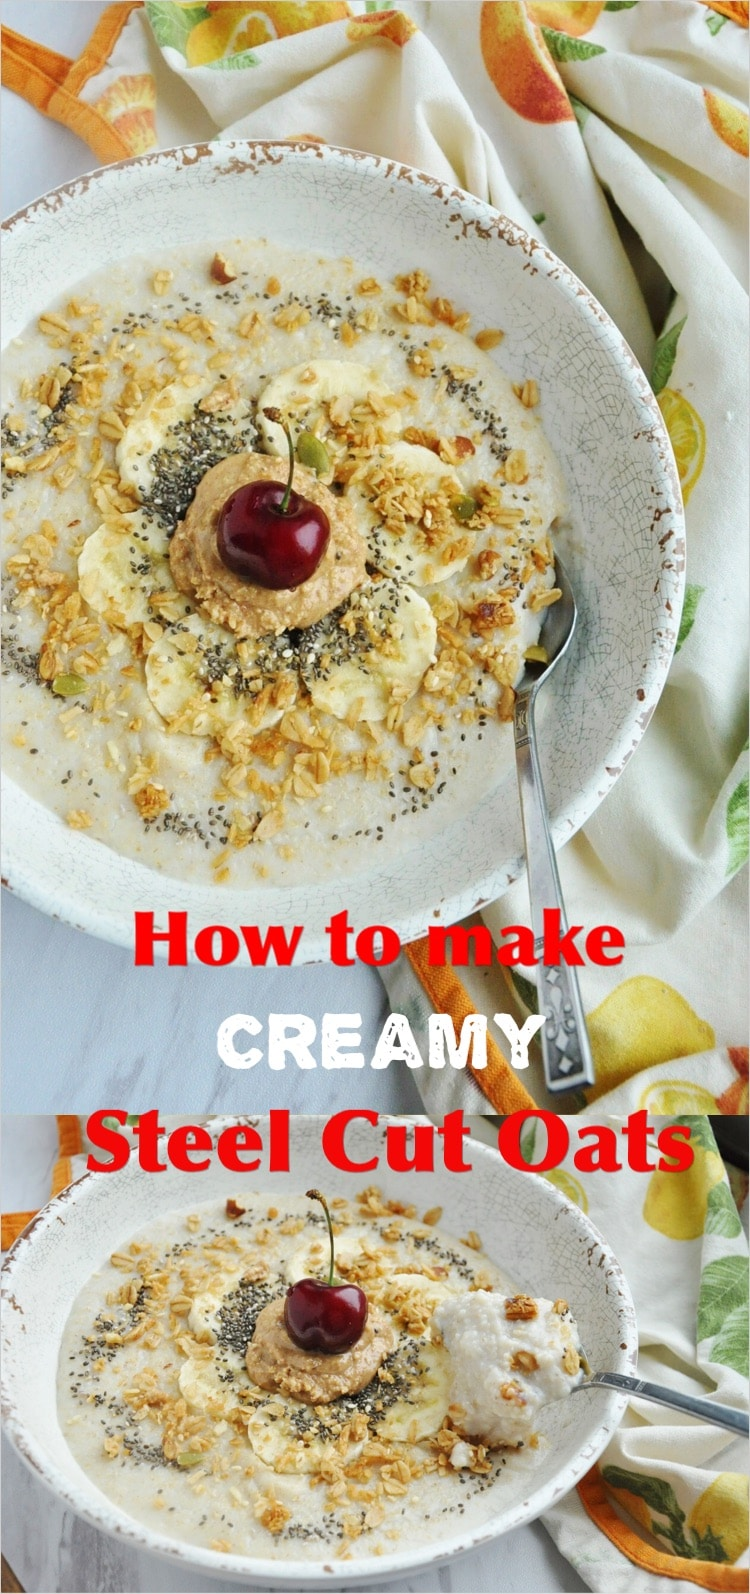 Creamy Steel Cut Oats pin